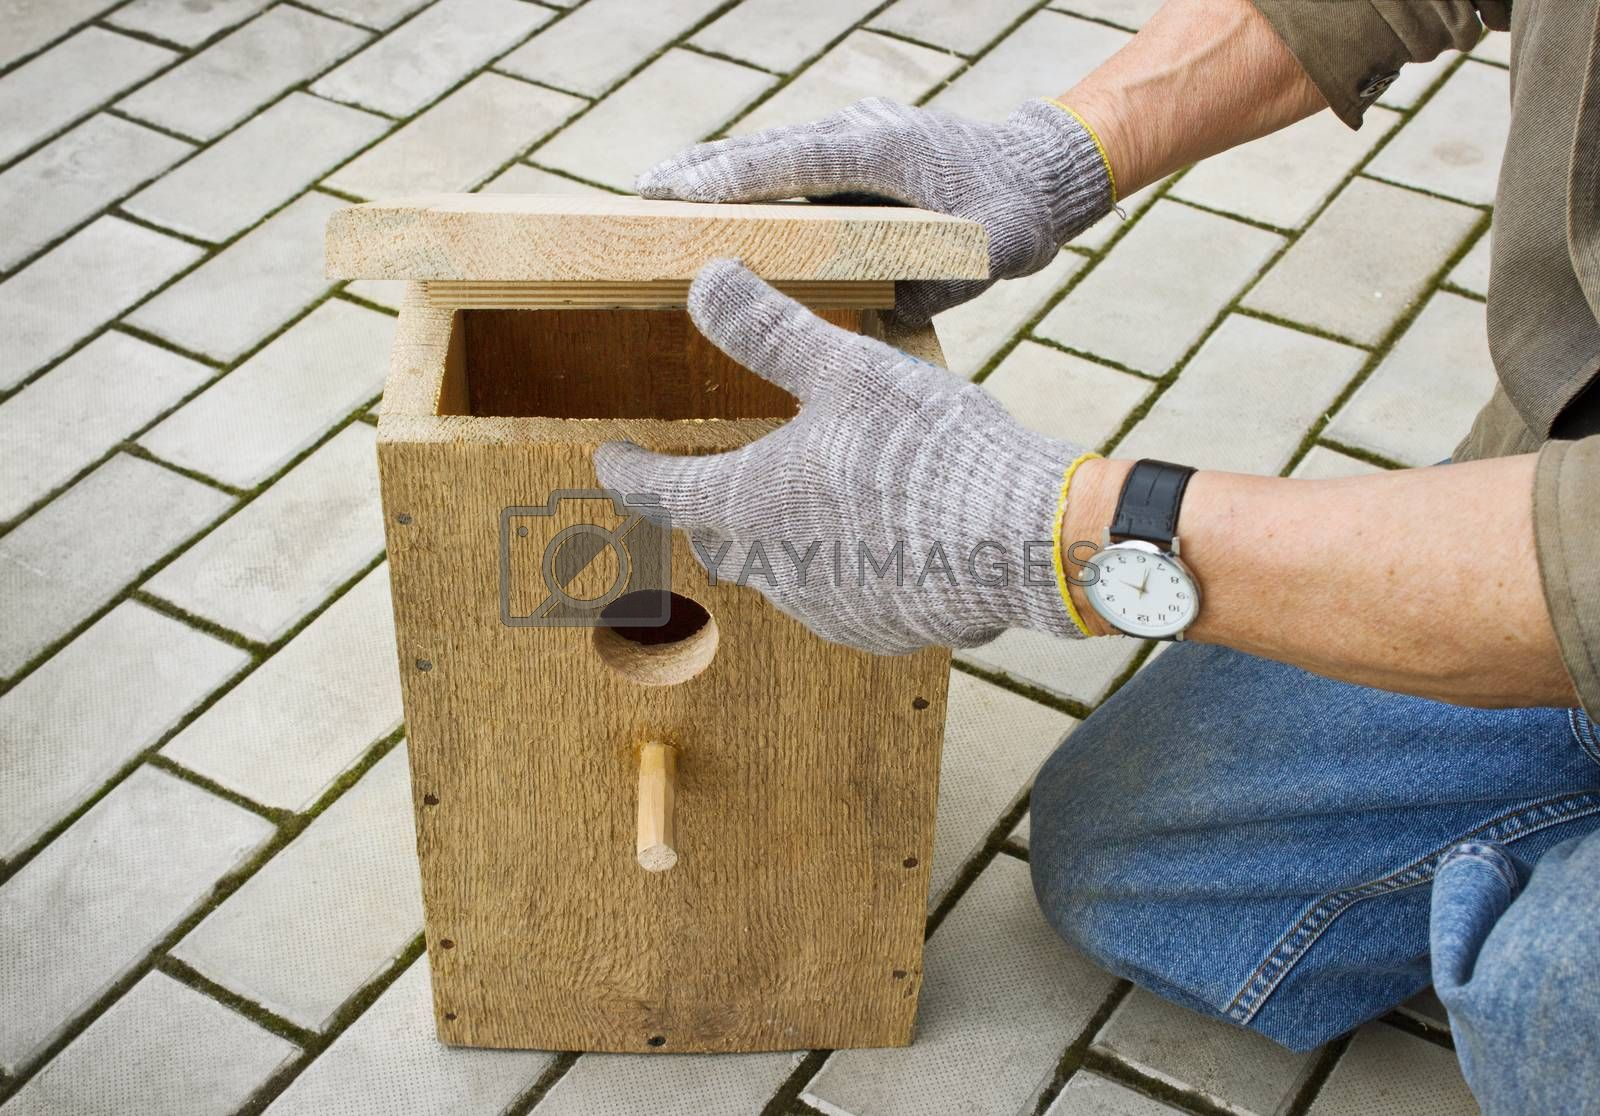 Making a birdhouse from wooden boards spring season